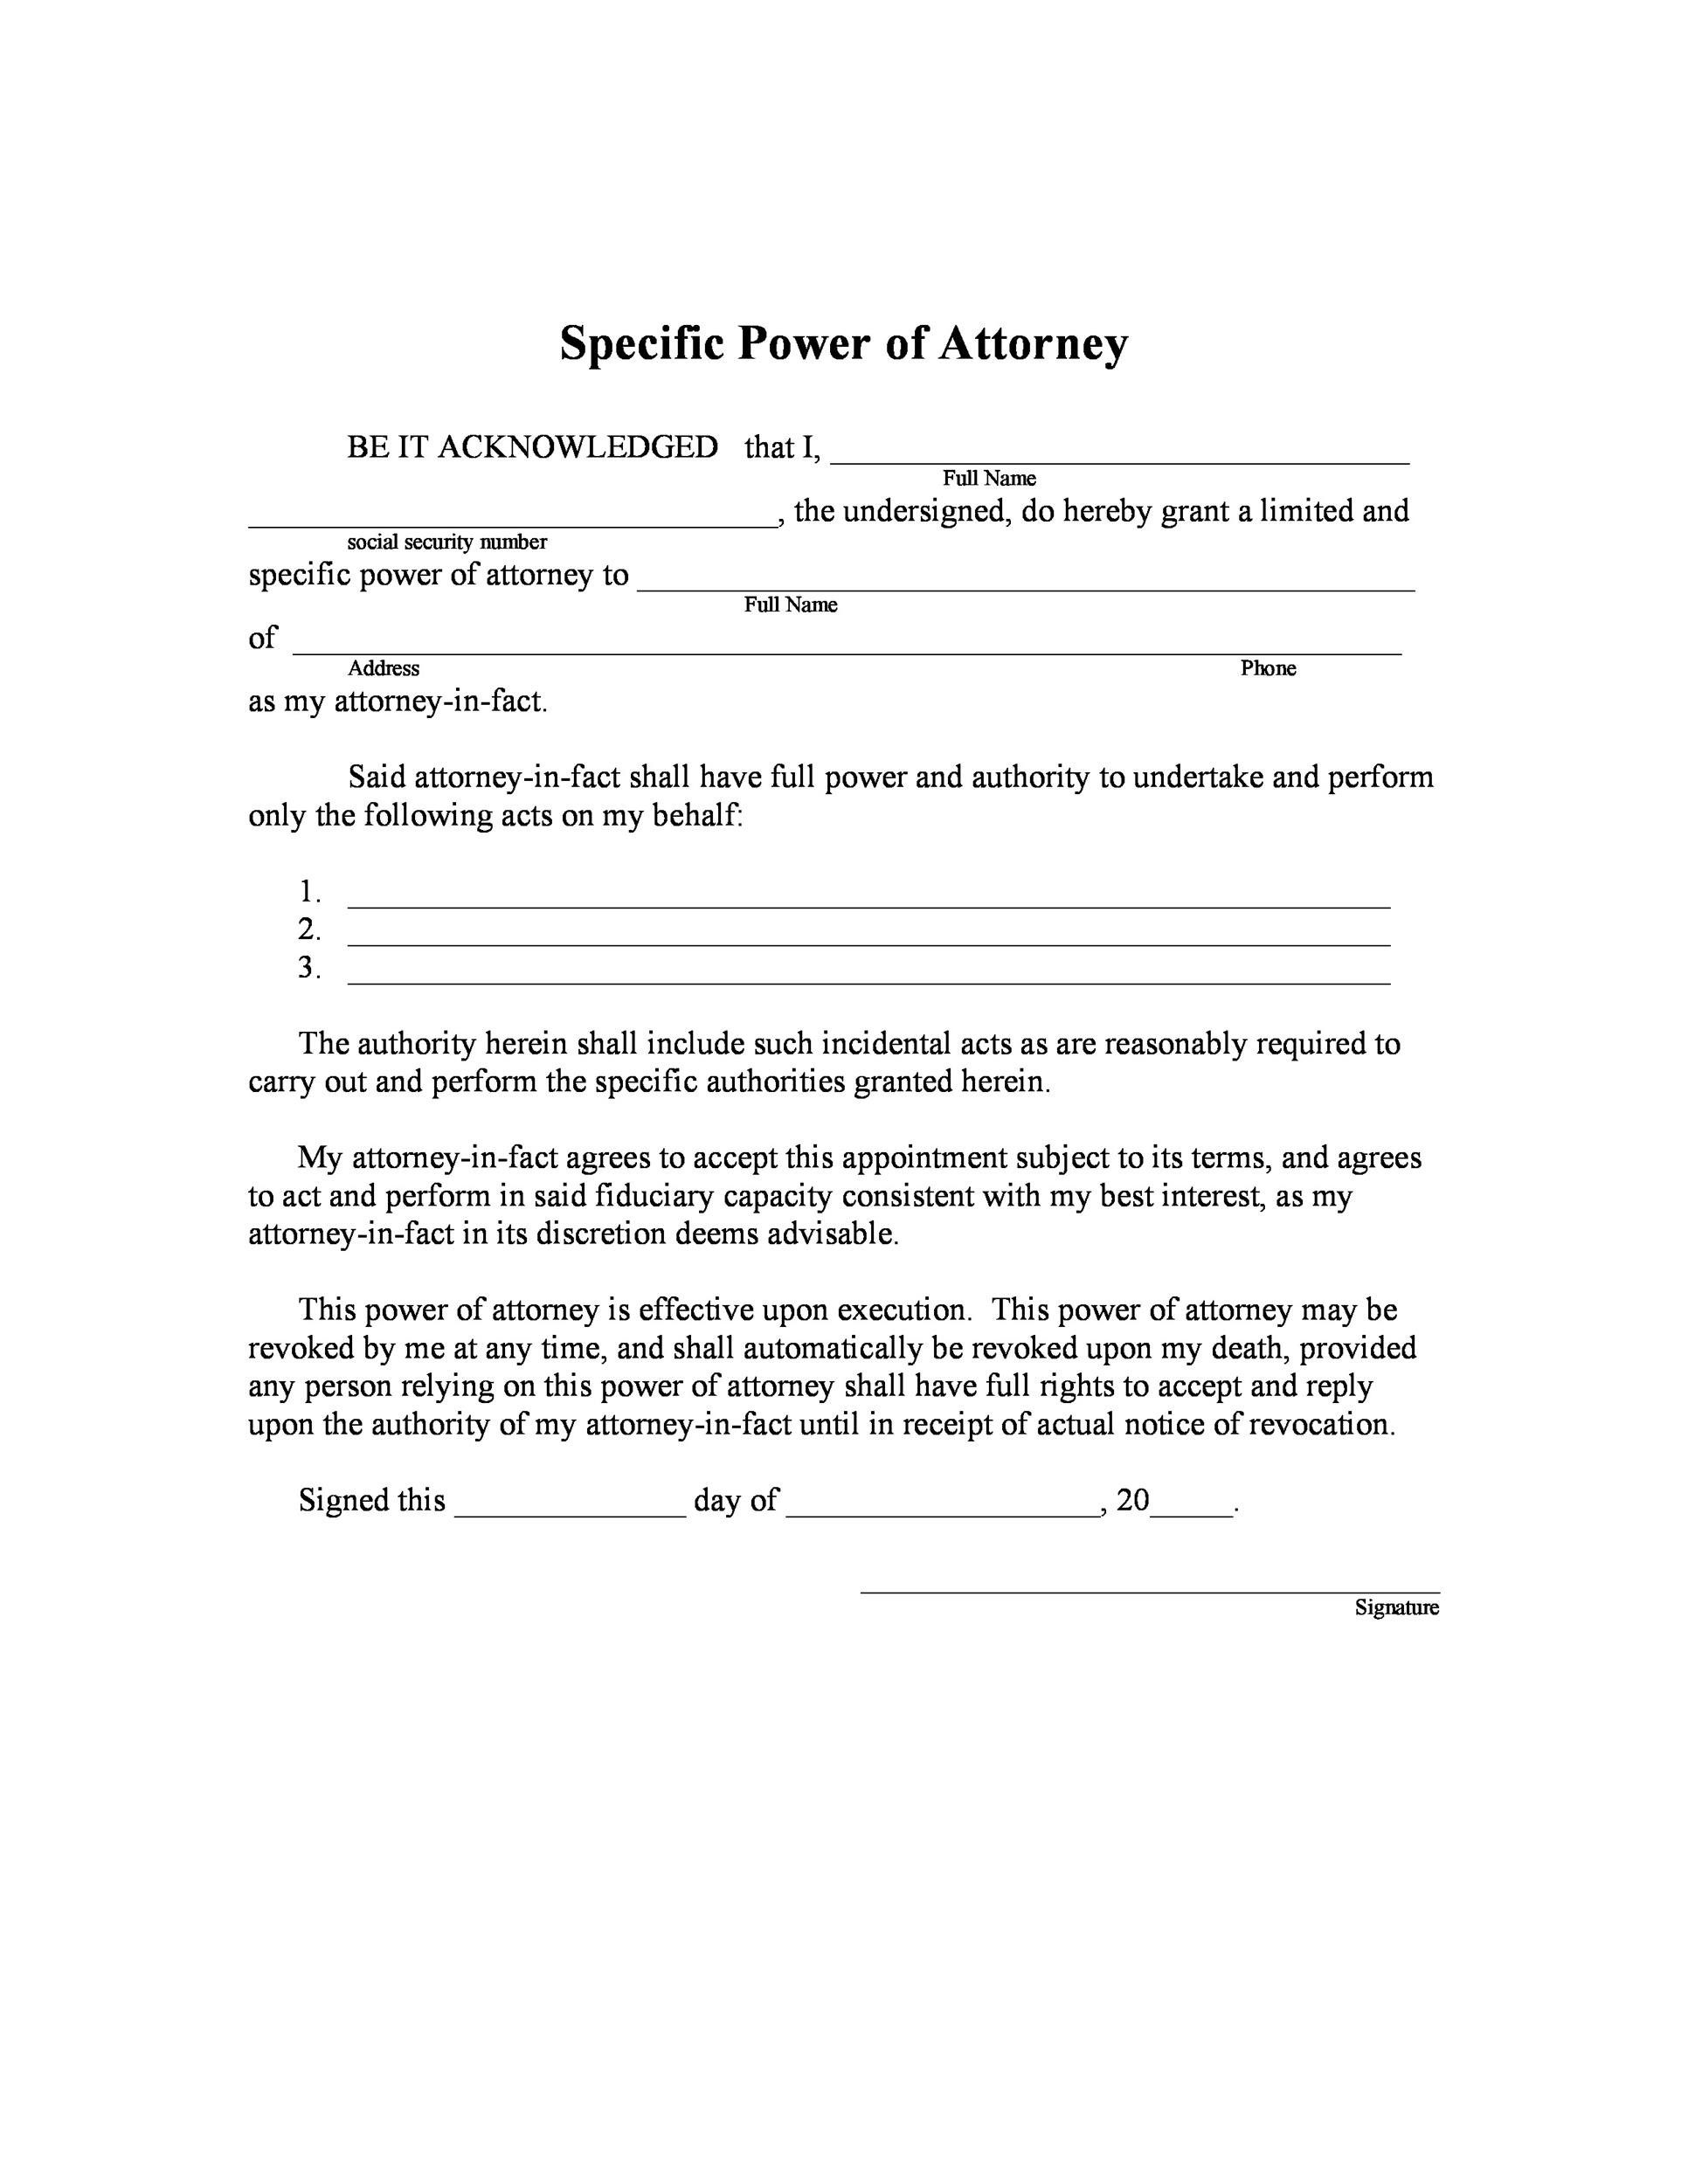 power of attorney form template  11 Free Power of Attorney Forms & Templates (Durable ...